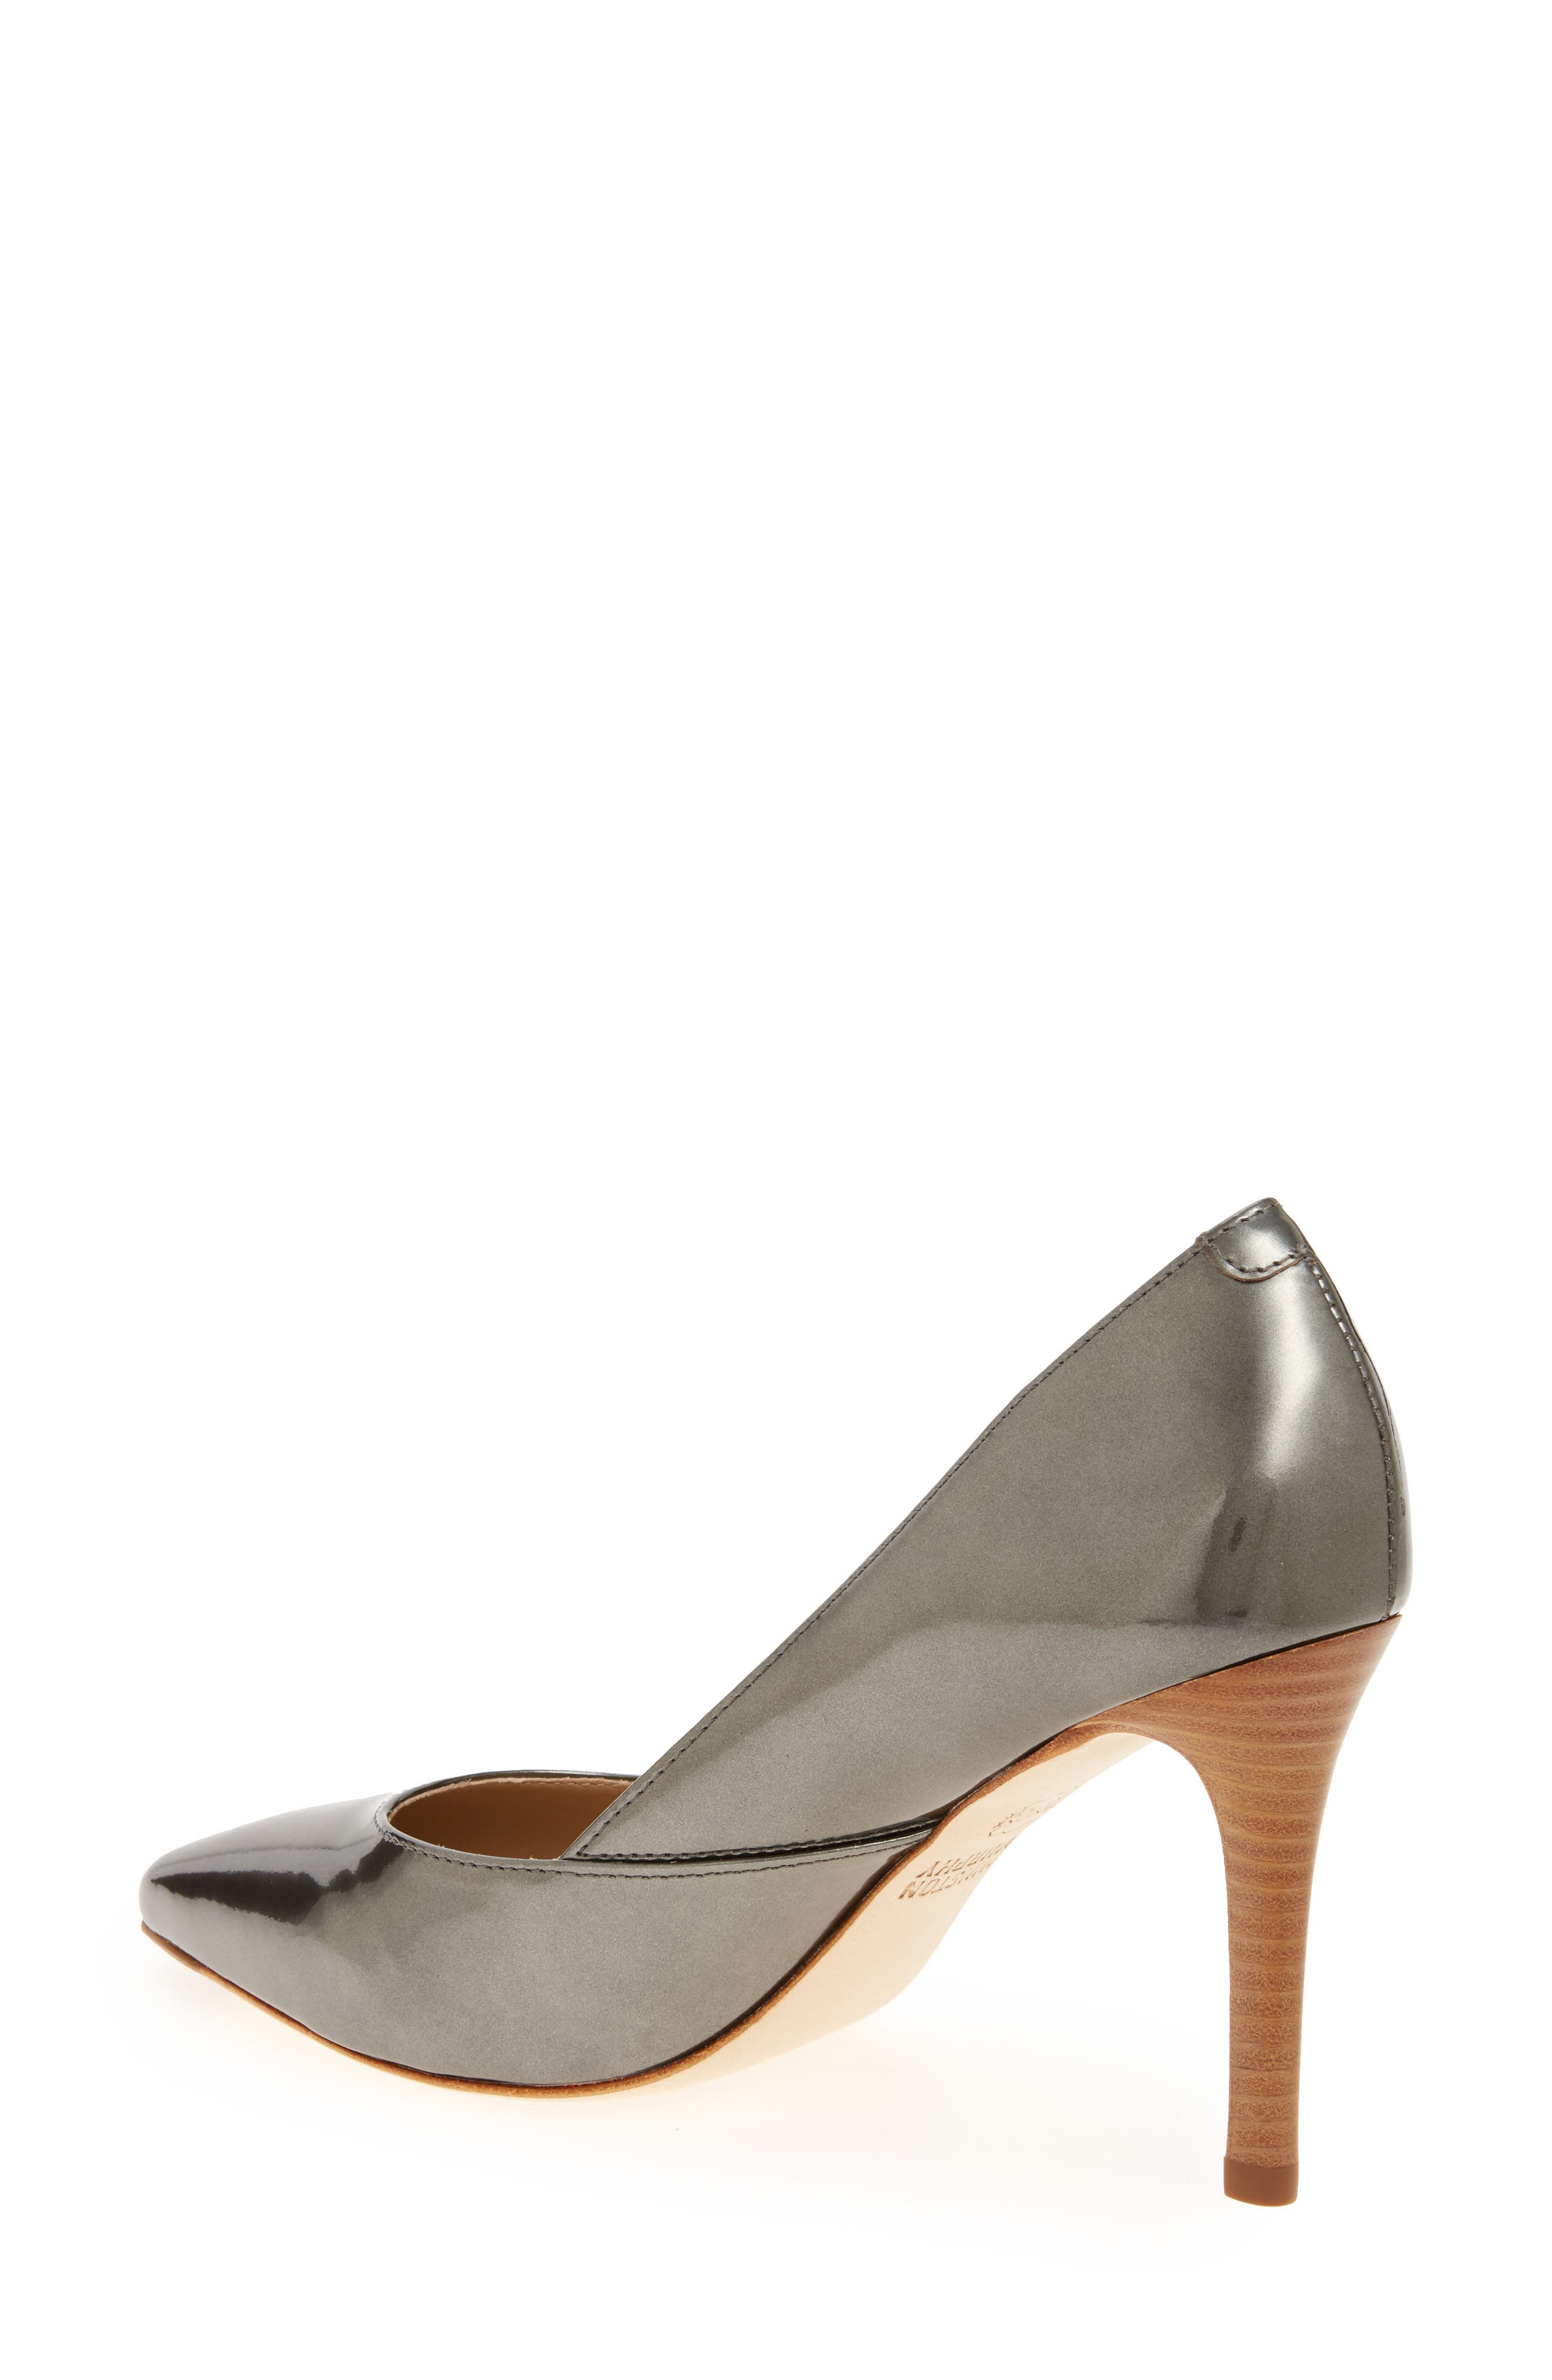 'Vanessa' Pointy Toe Leather Pump,                             Alternate thumbnail 12, color,